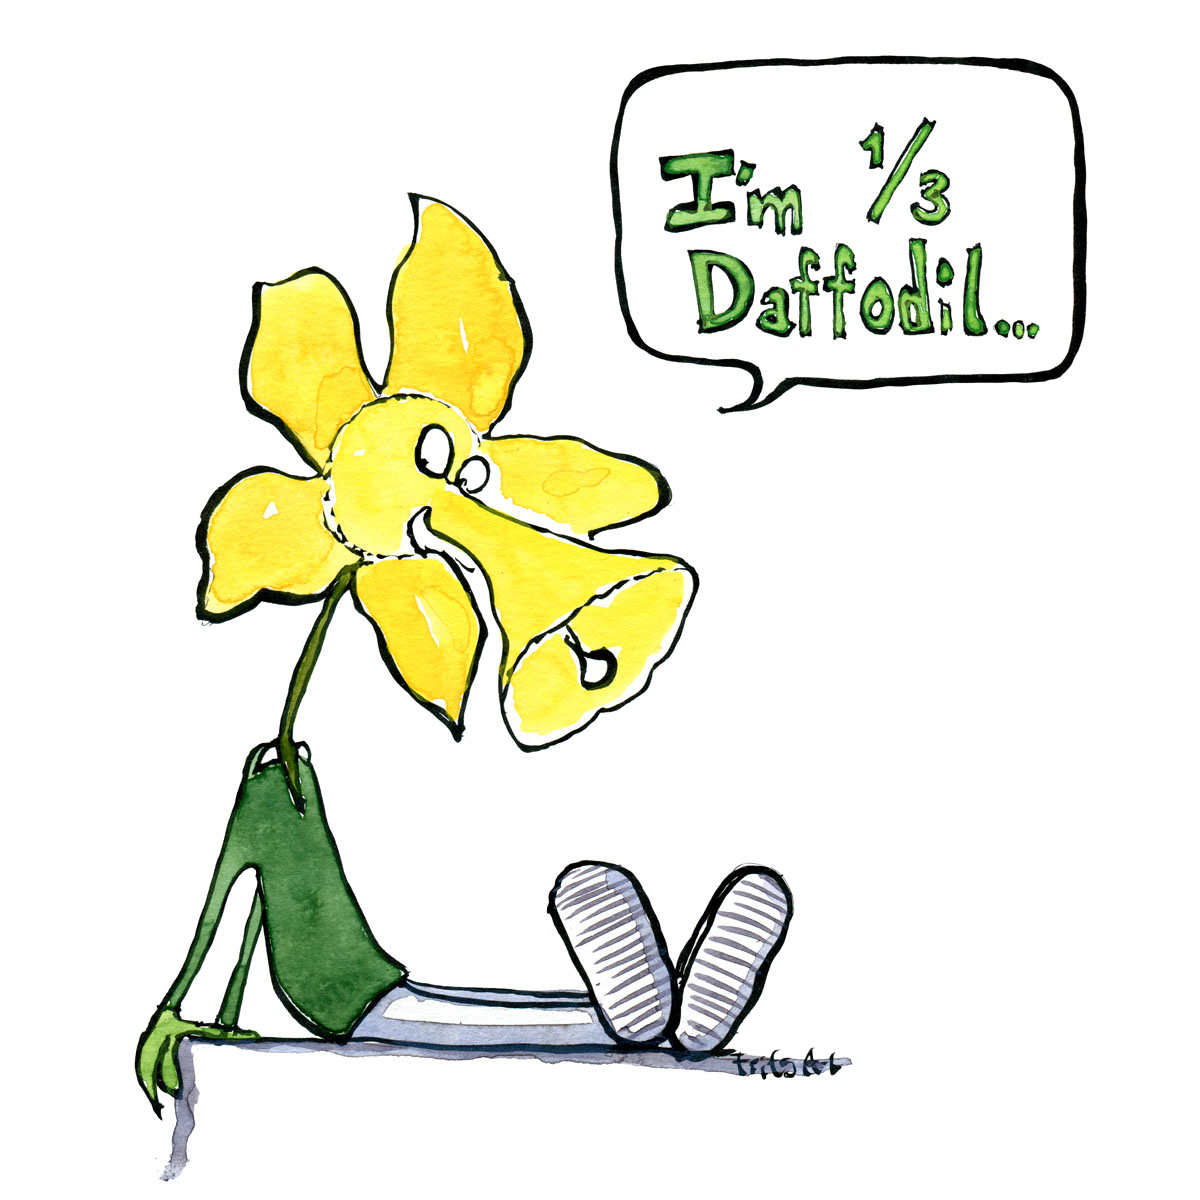 """Drawing of a creature with human body and daffodil head saying """"I'm 1 third daffodil"""" Psychology illustration by Frits Ahlefeldt"""